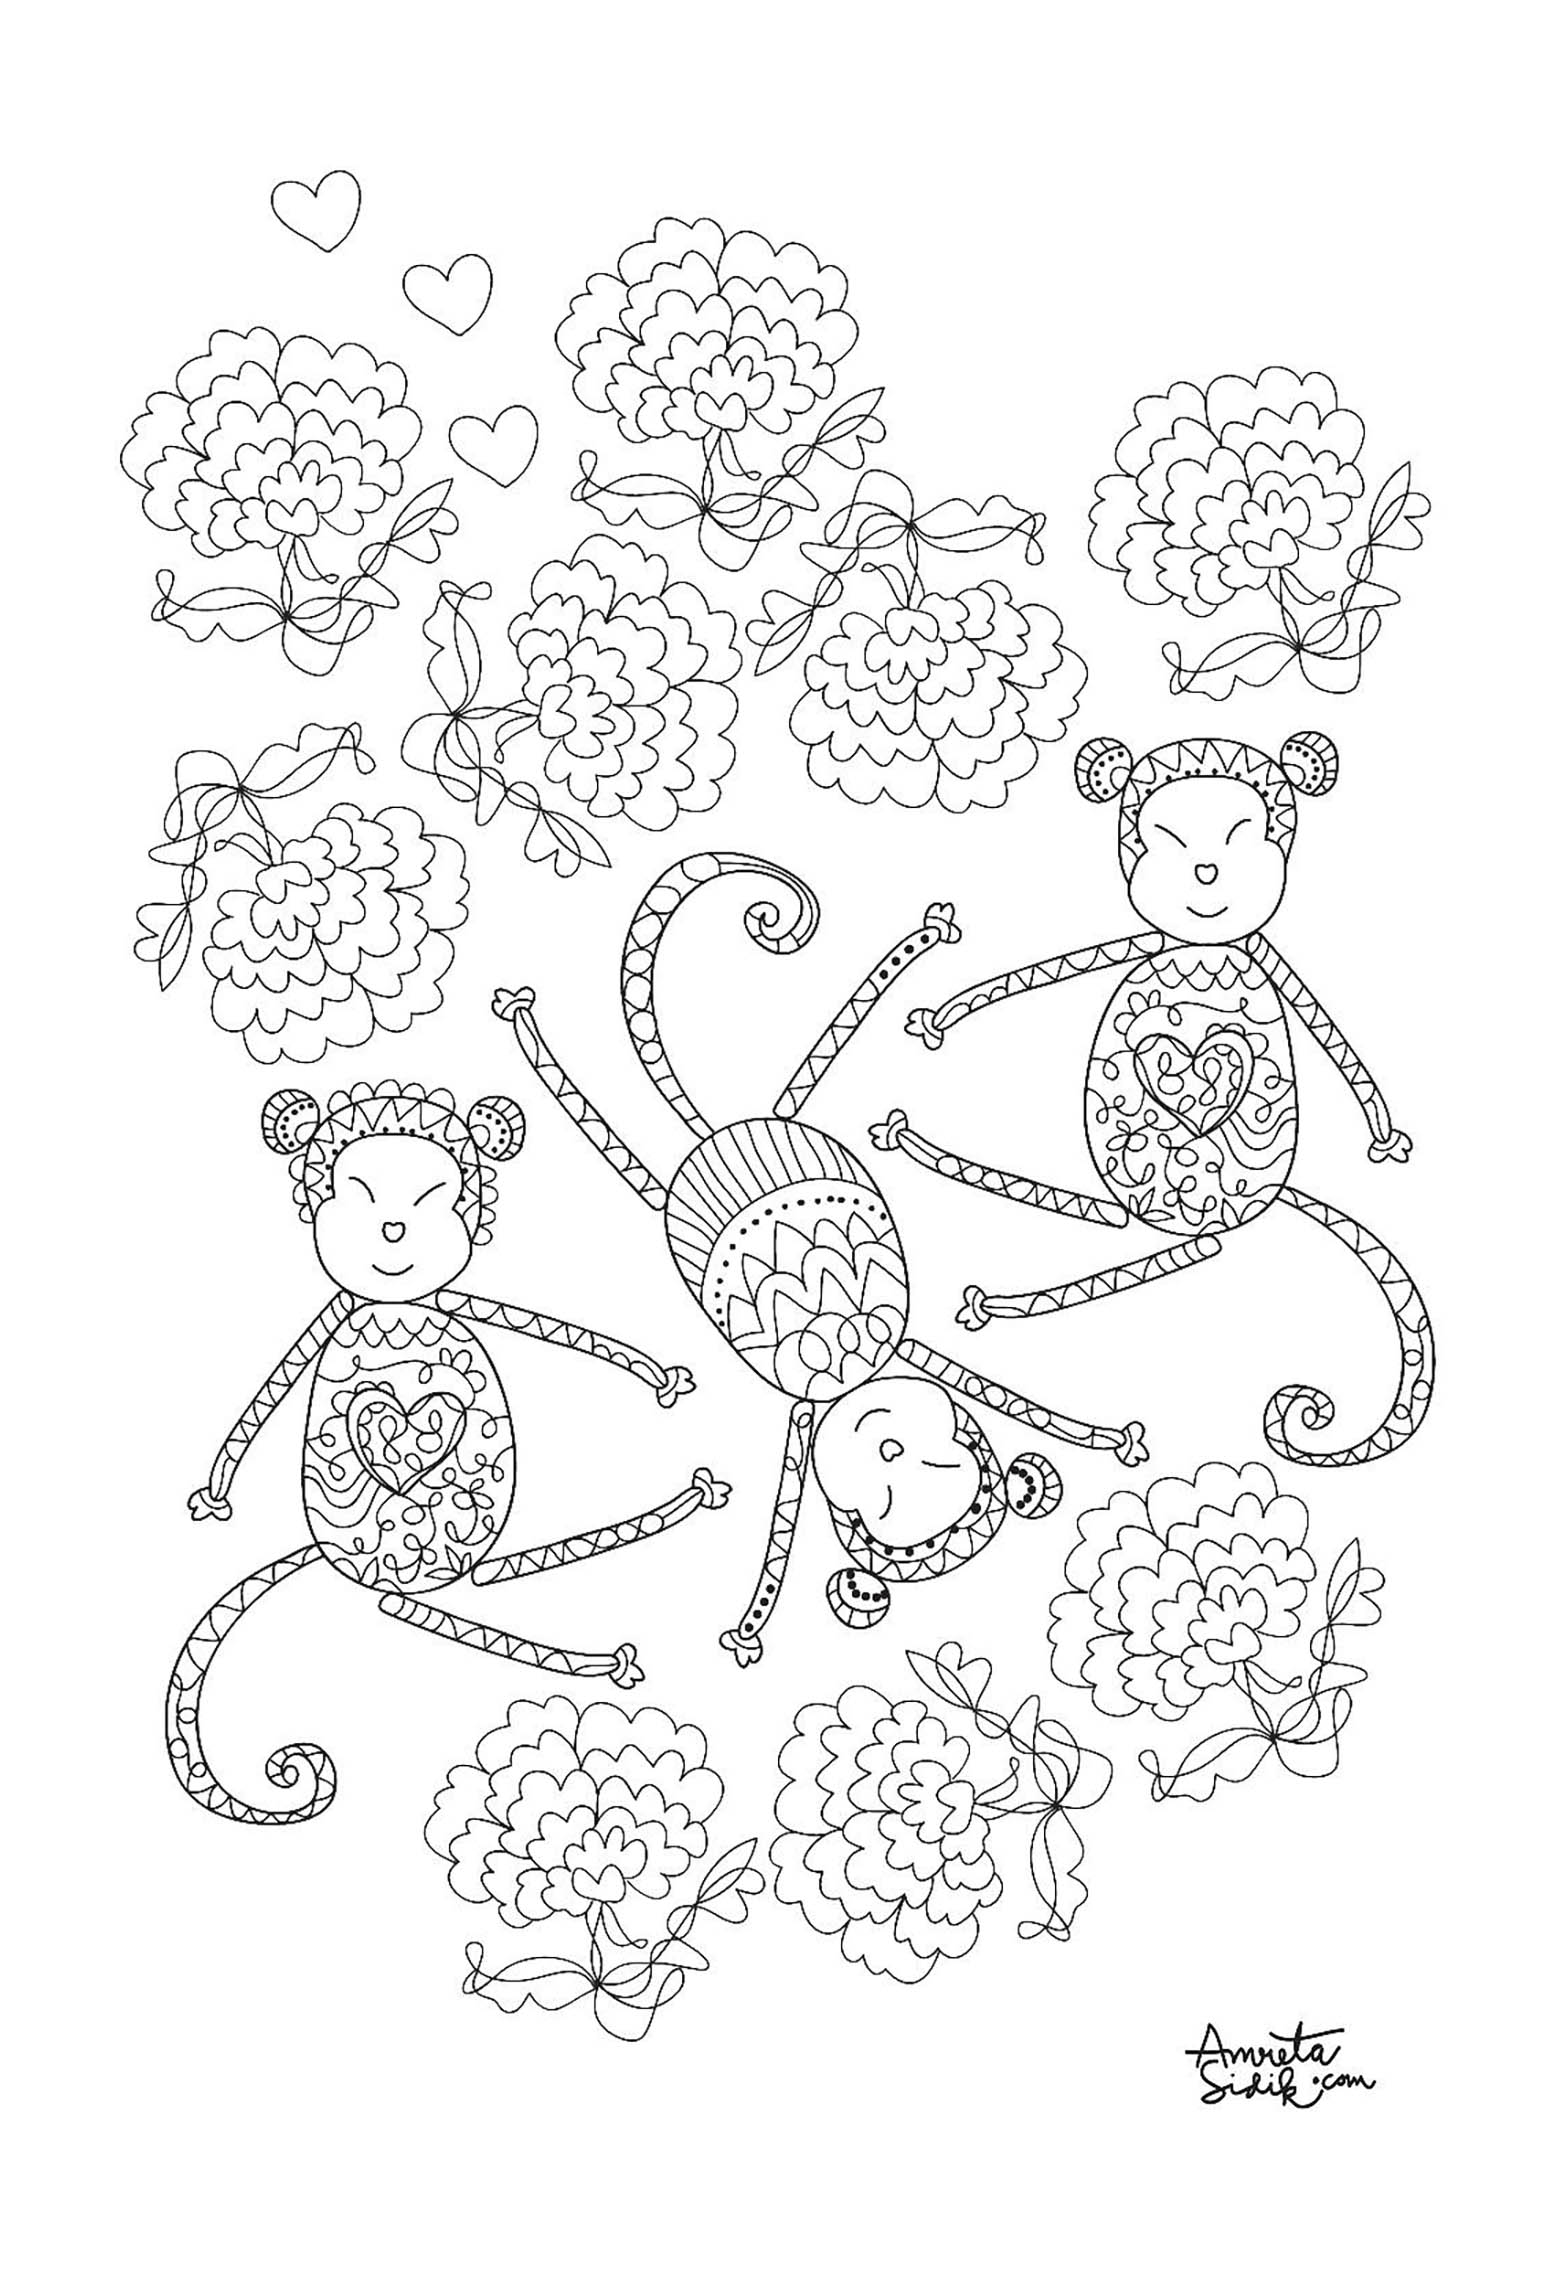 Monkey 3 Monkeys Adult Coloring